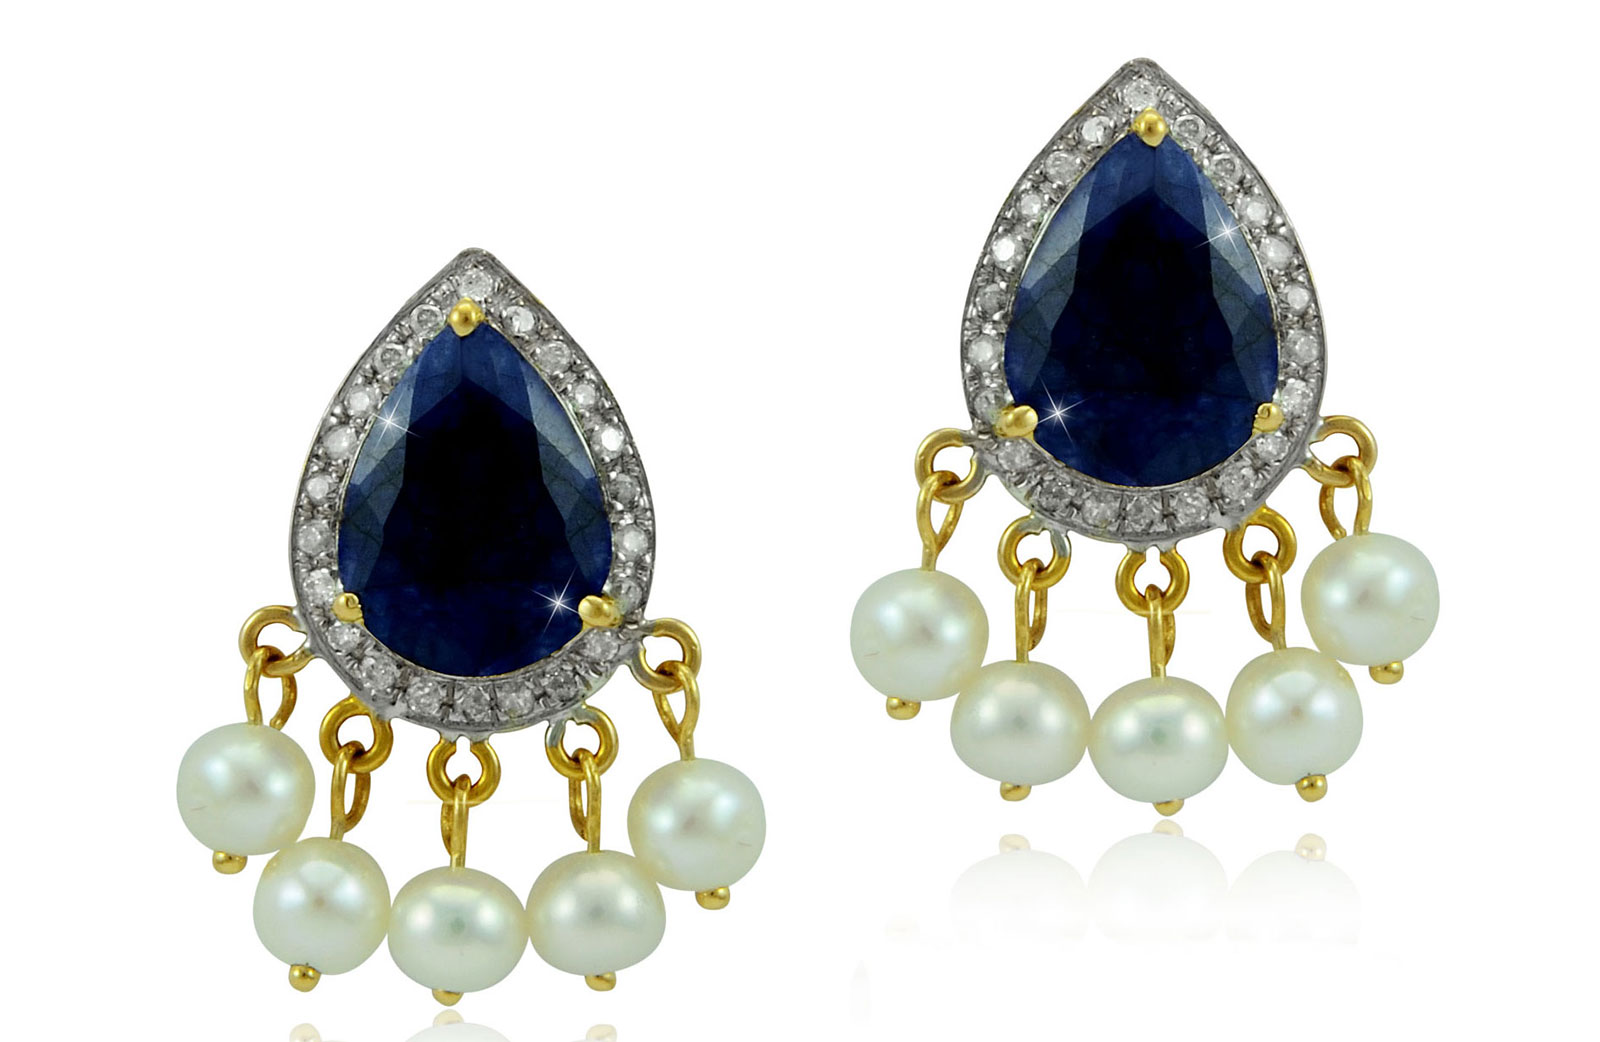 Vera Perla 18K Gold 0.24ct Diamonds, Royal Indian Sapphire Earrings